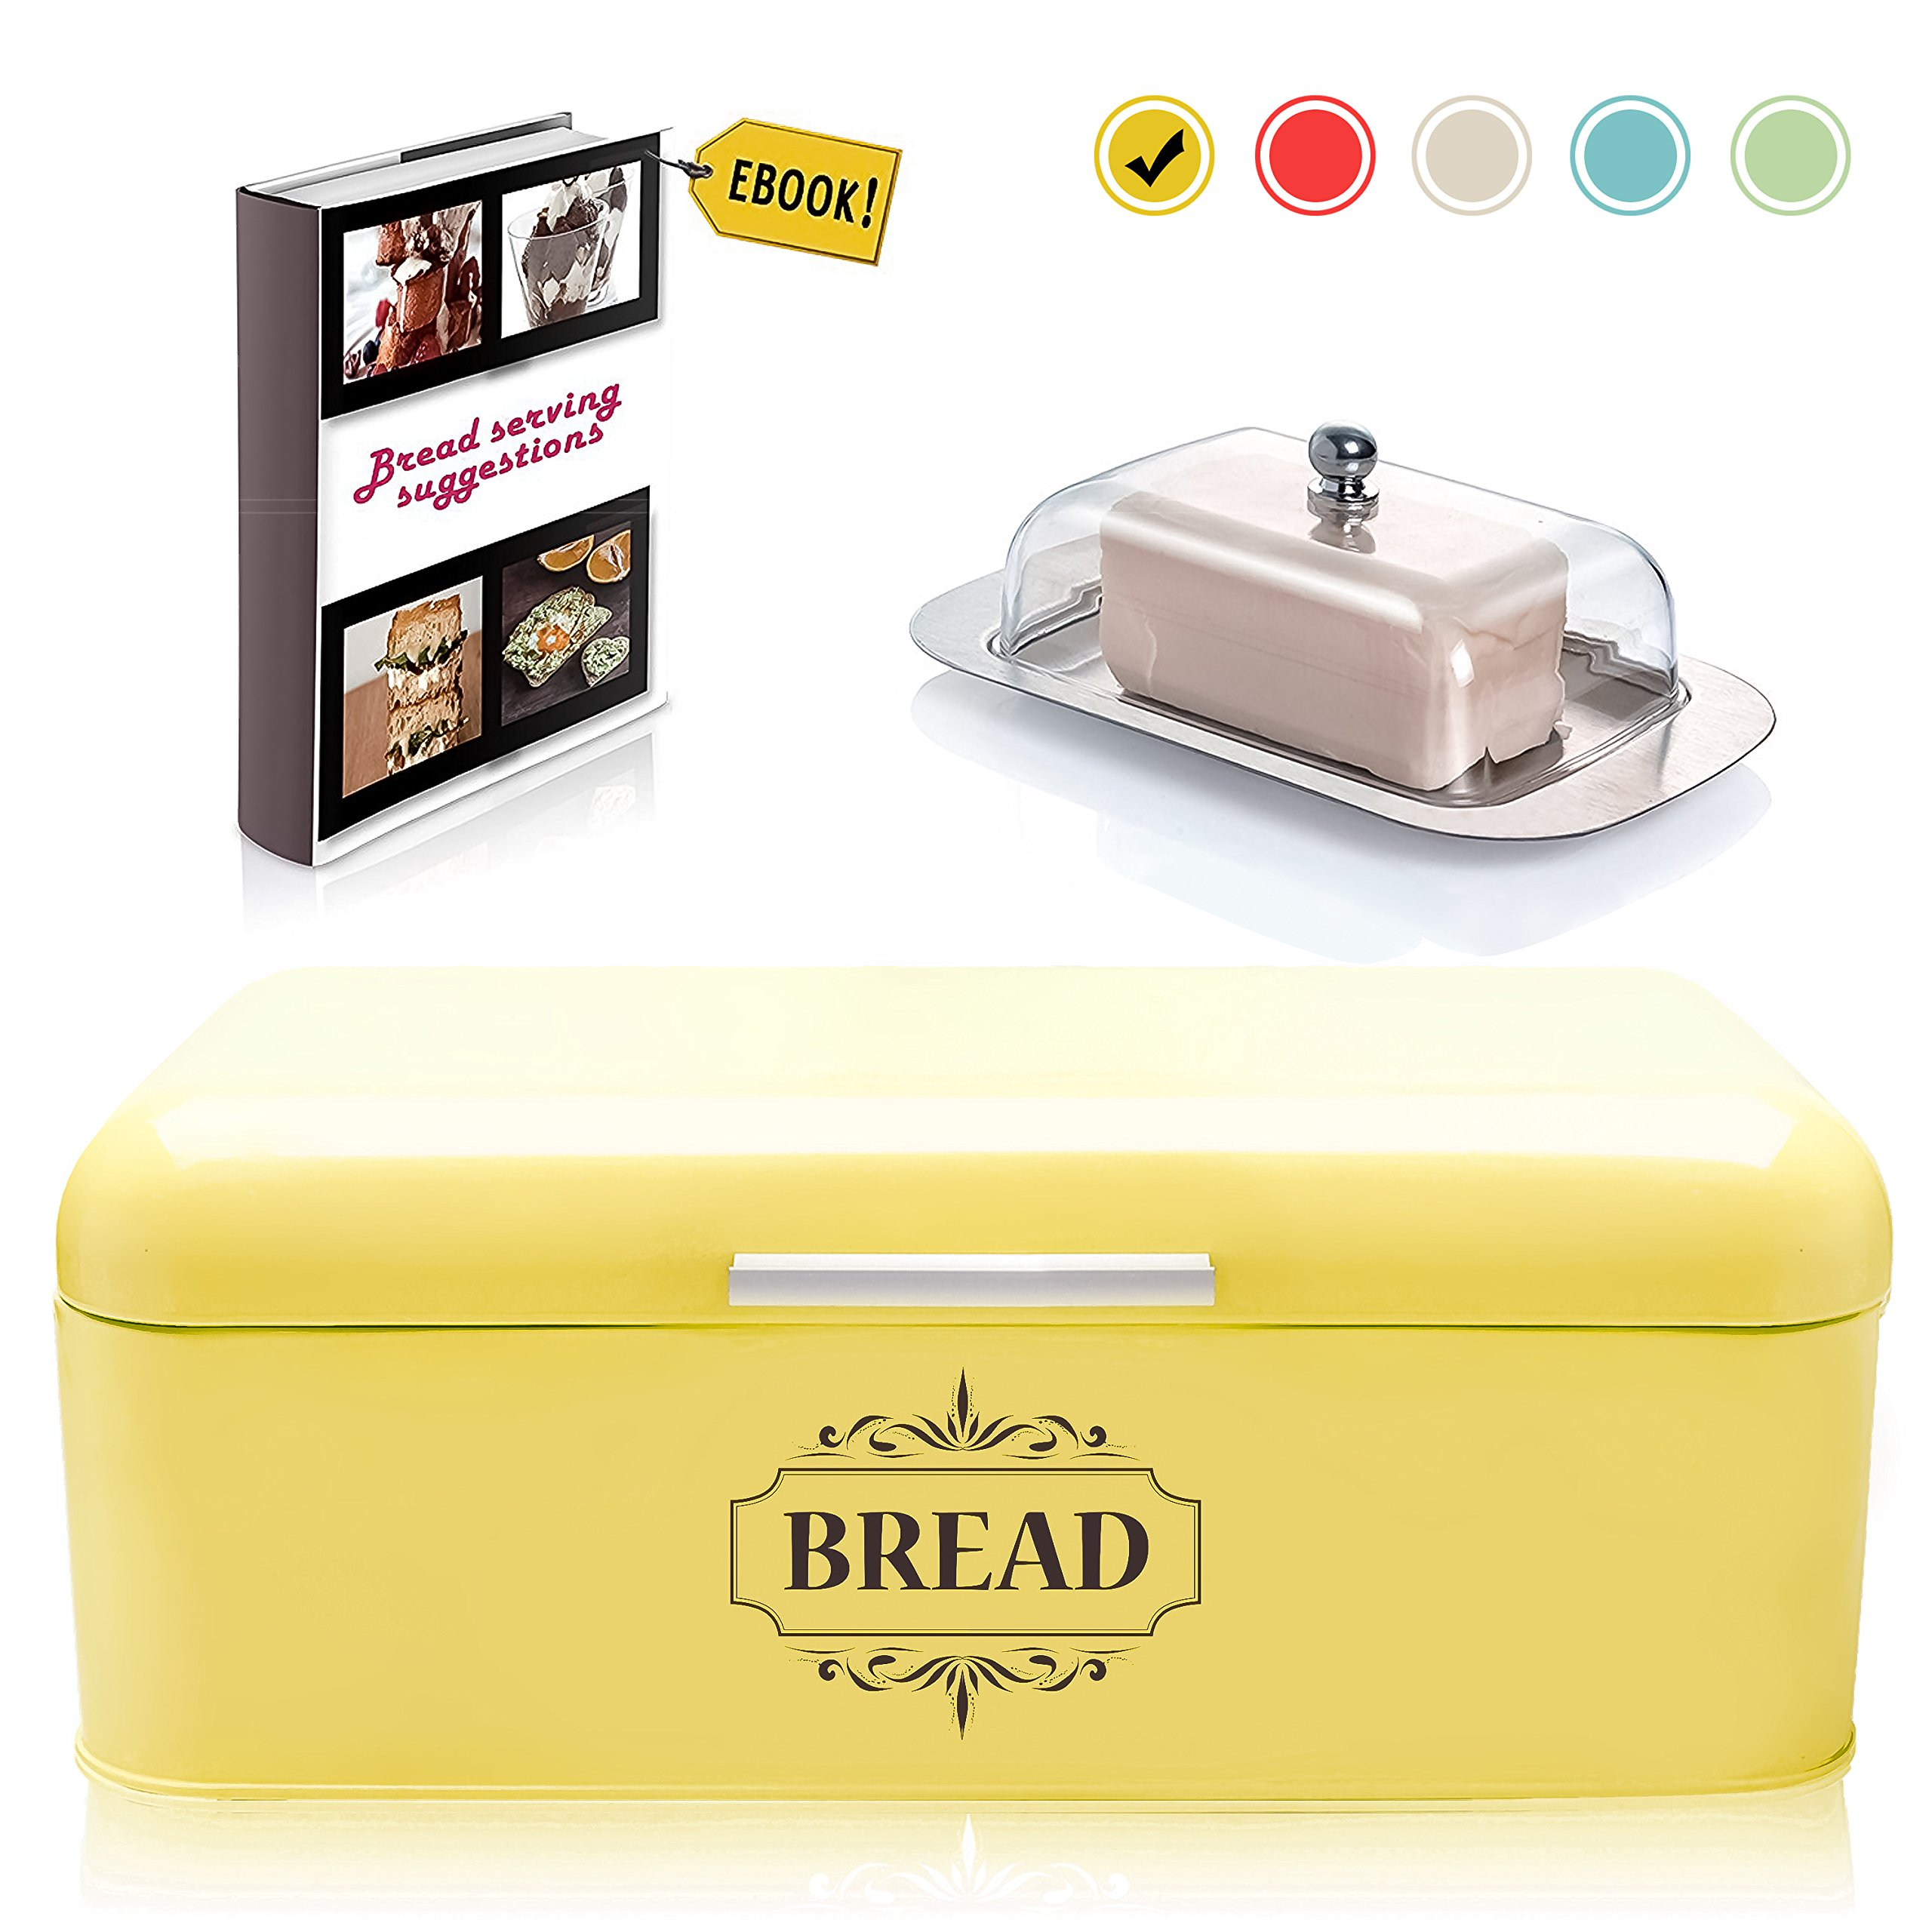 Vintage Bread Box For Kitchen Stainless Steel Metal in Retro Yellow + FREE Butter Dish + FREE Bread Serving Suggestions eBook 16.5'' x 9'' x 6.5'' Large Bread Bin storage by All-Green Products